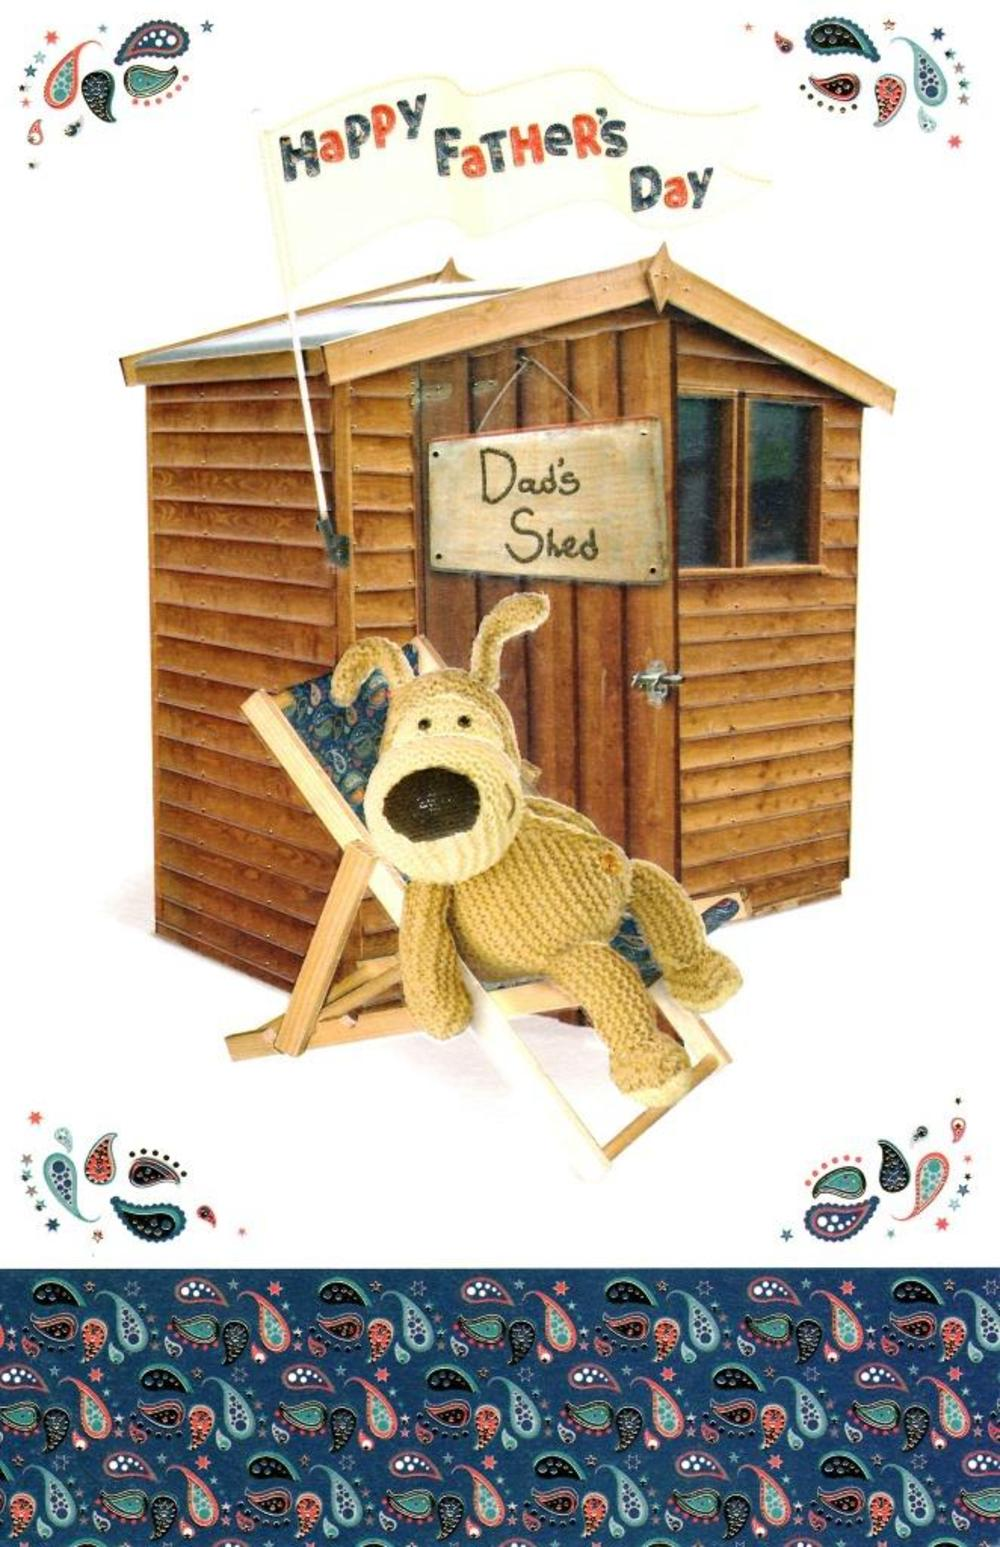 Boofle Dad's Shed Happy Father's Day Card